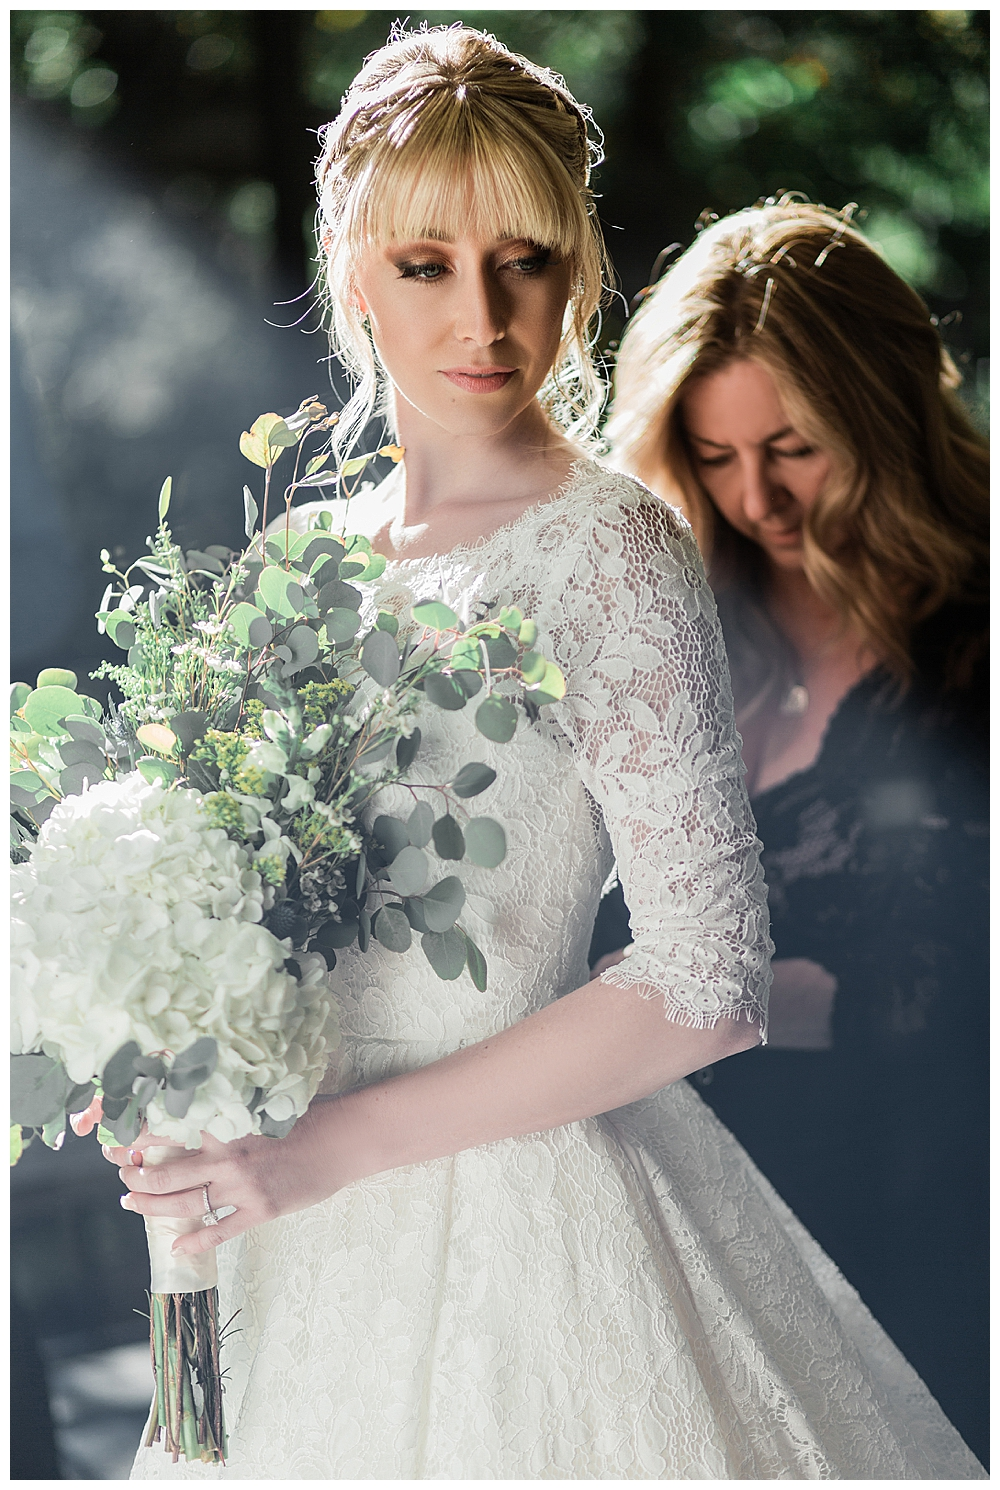 mom-dressing-bride-wedding-photography